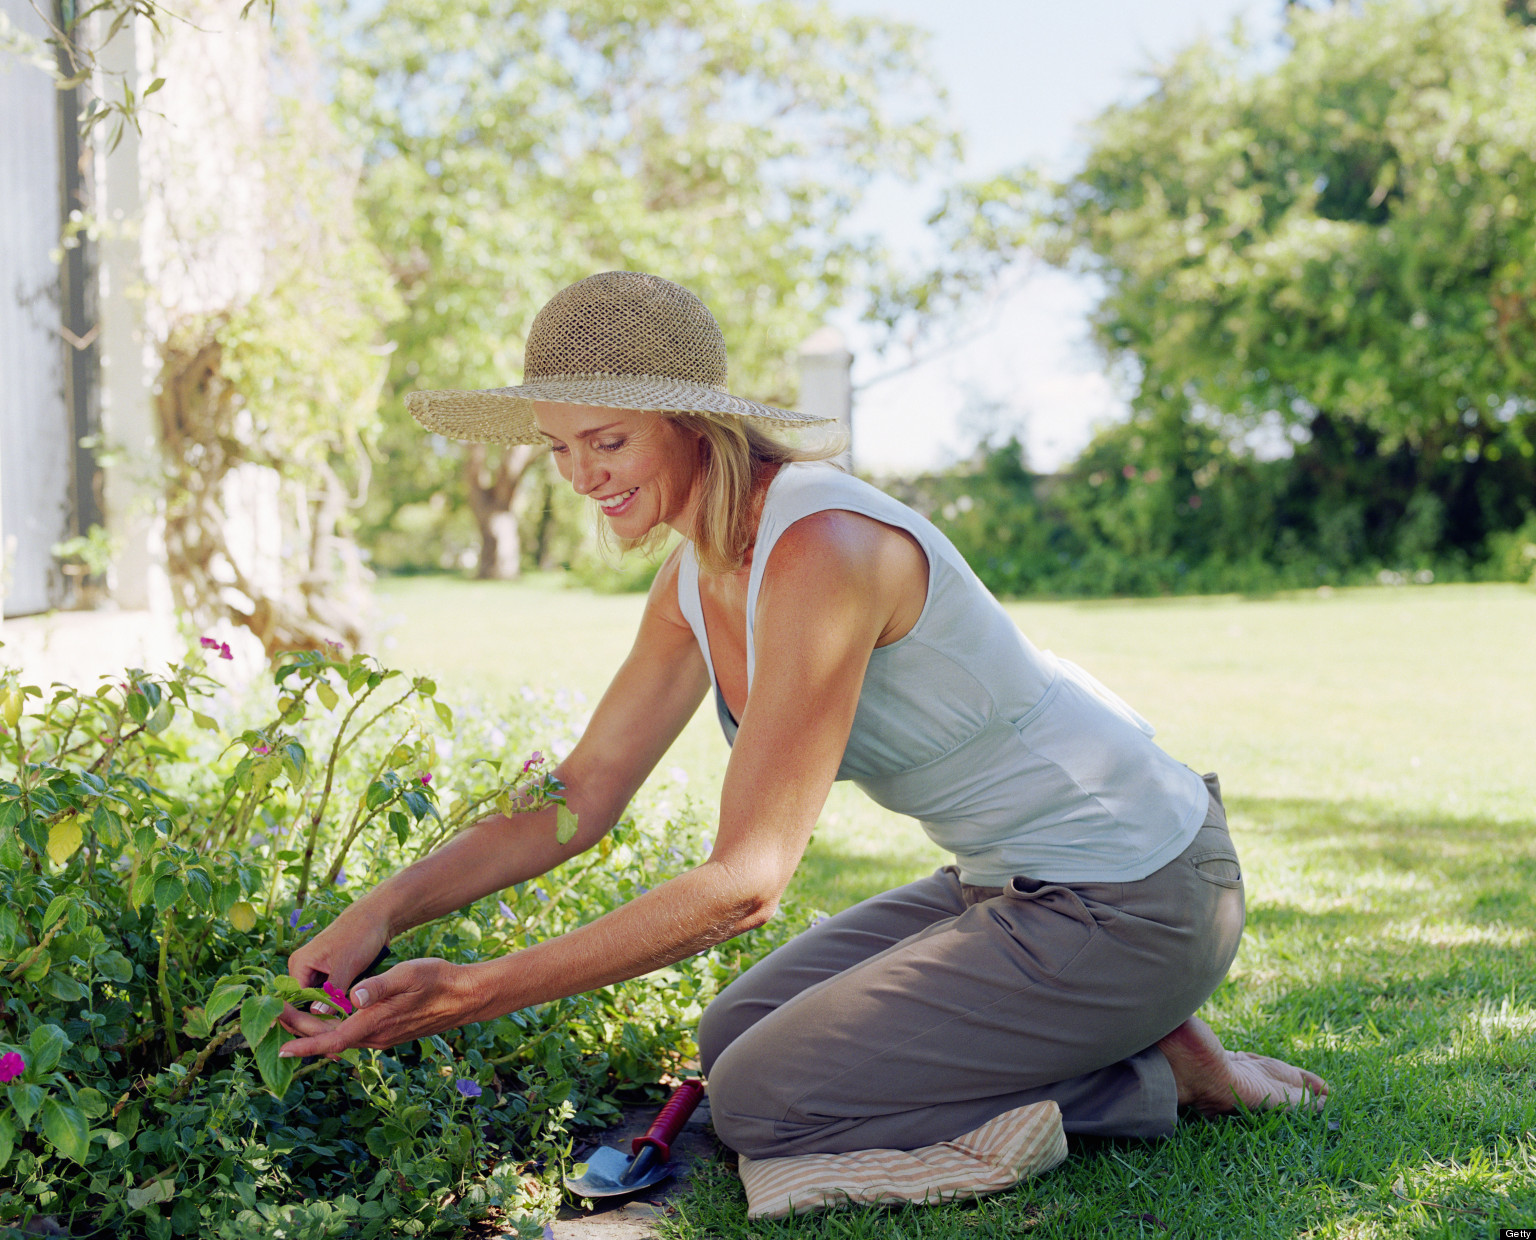 Five gardening tips for beginners